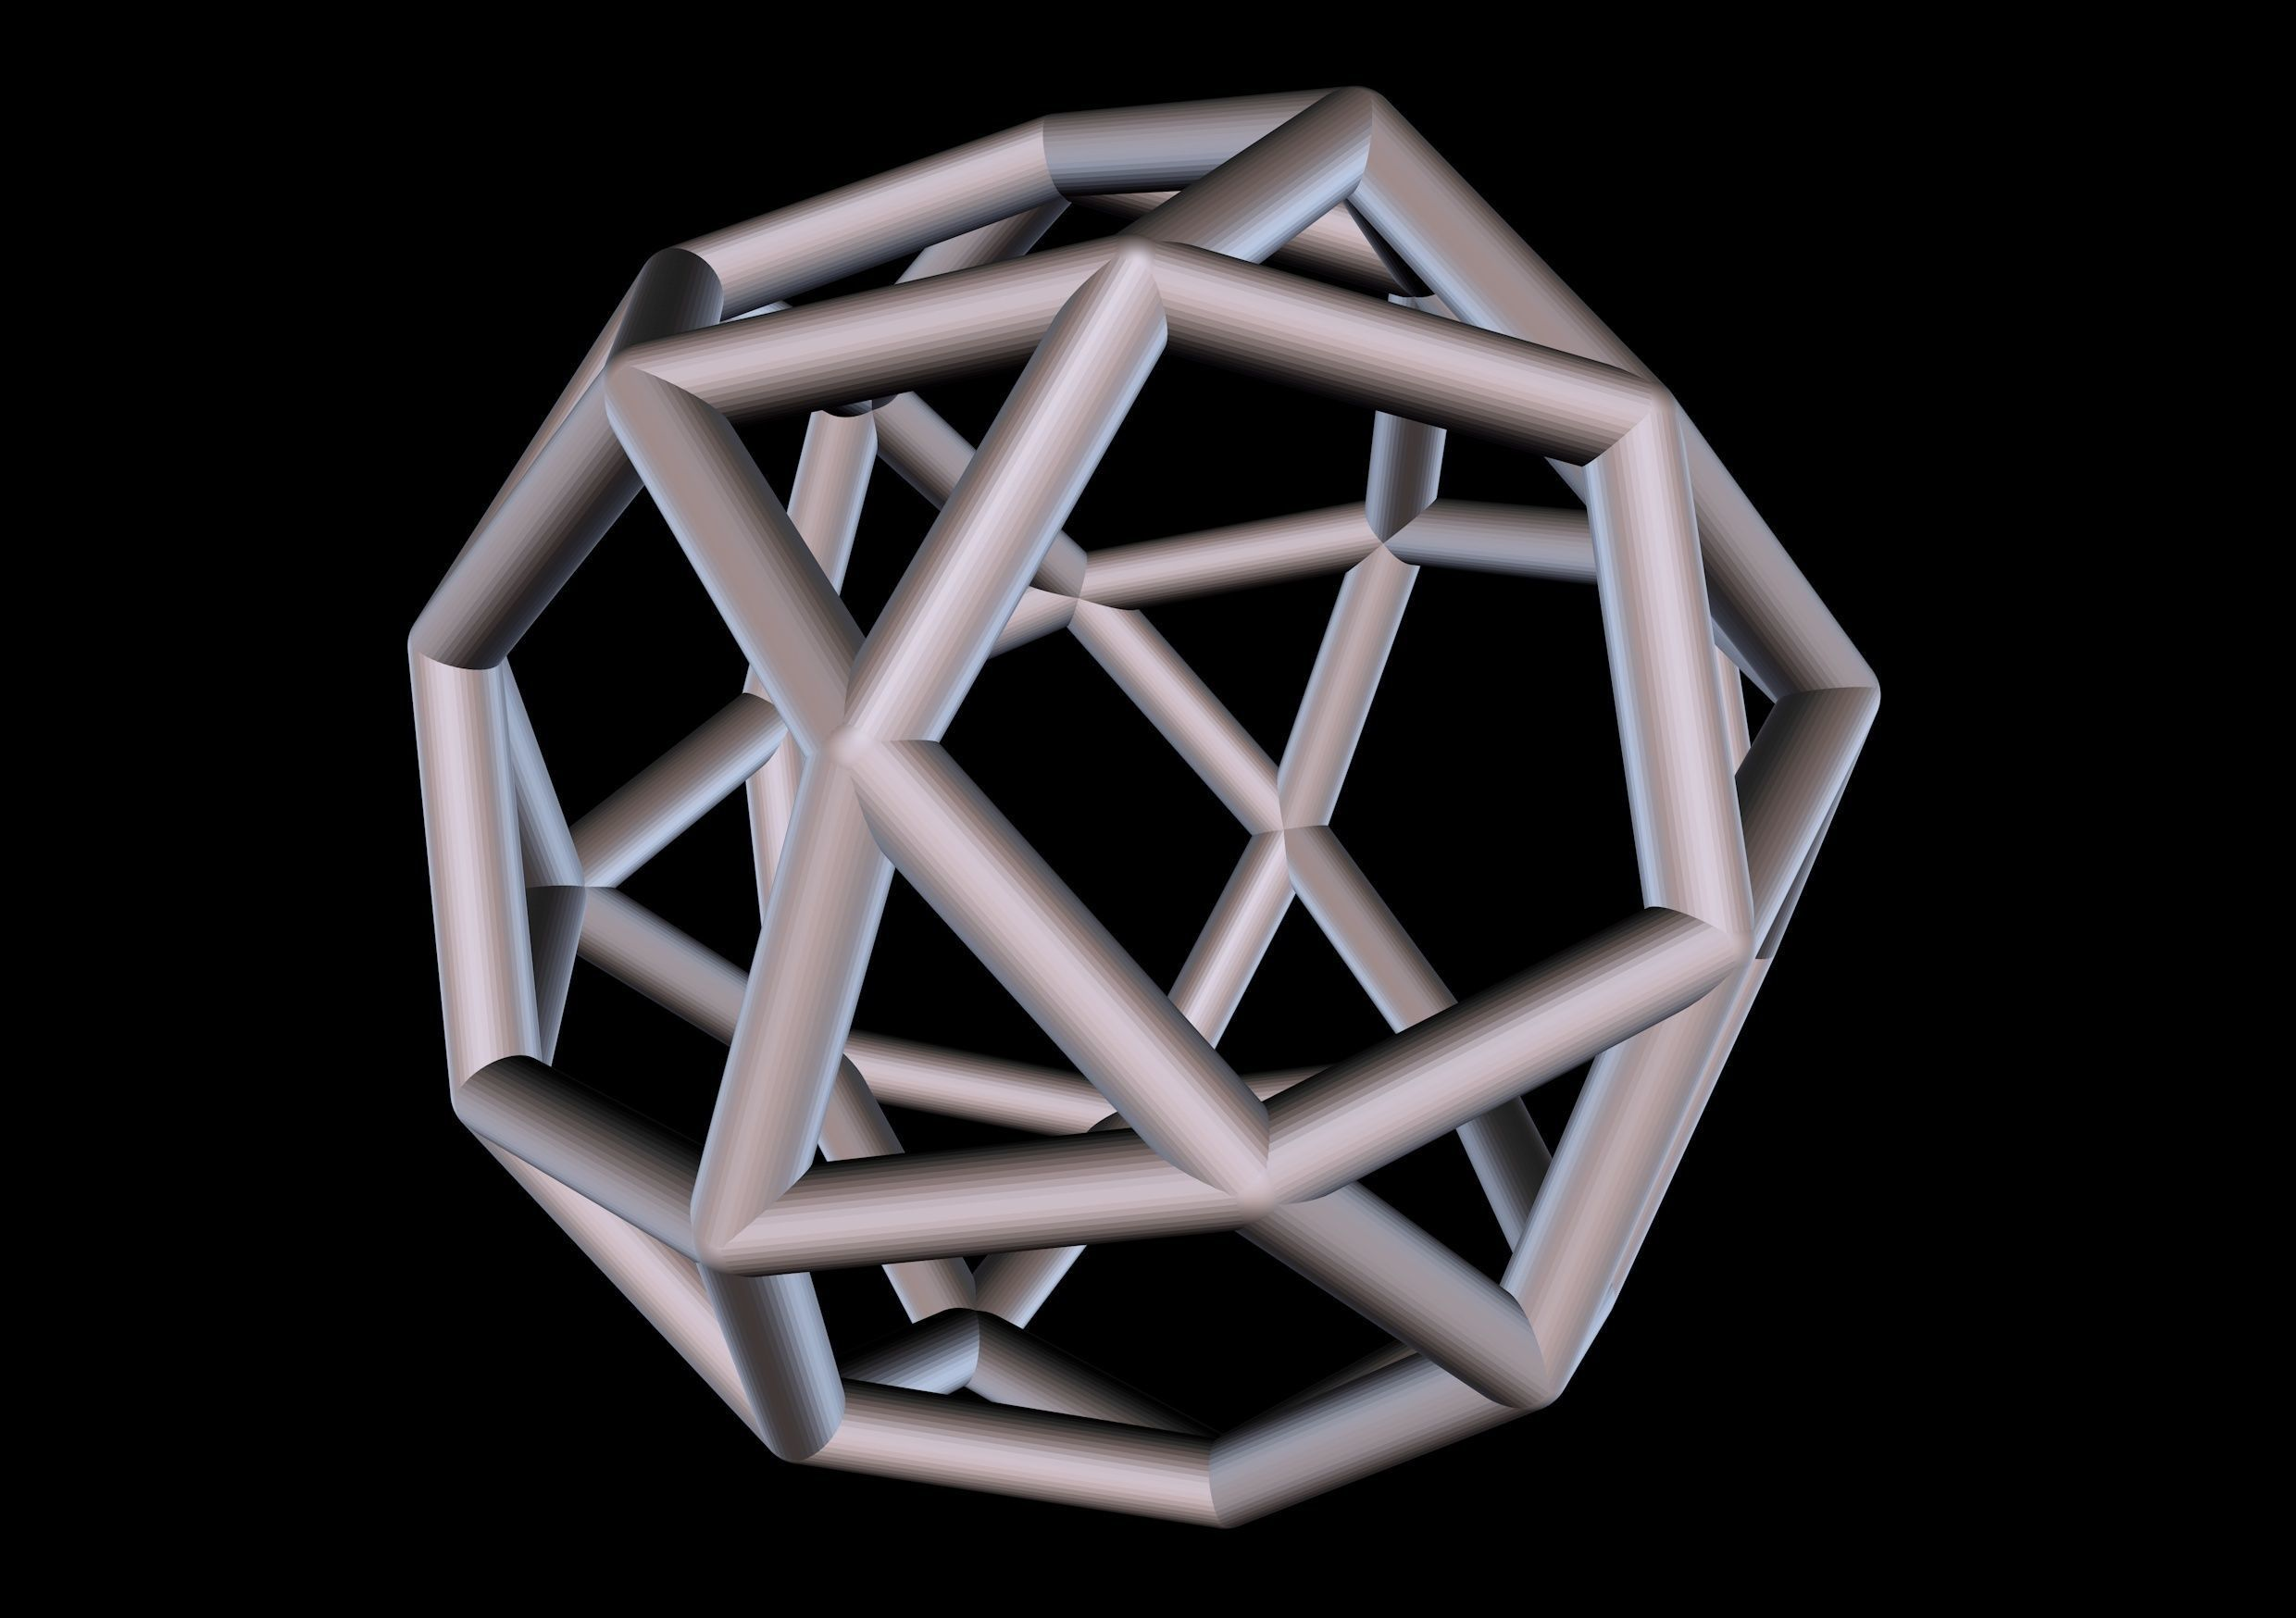 025 Mathart - Archimedean Solids - Icosidodecahedron 01 - 10cm